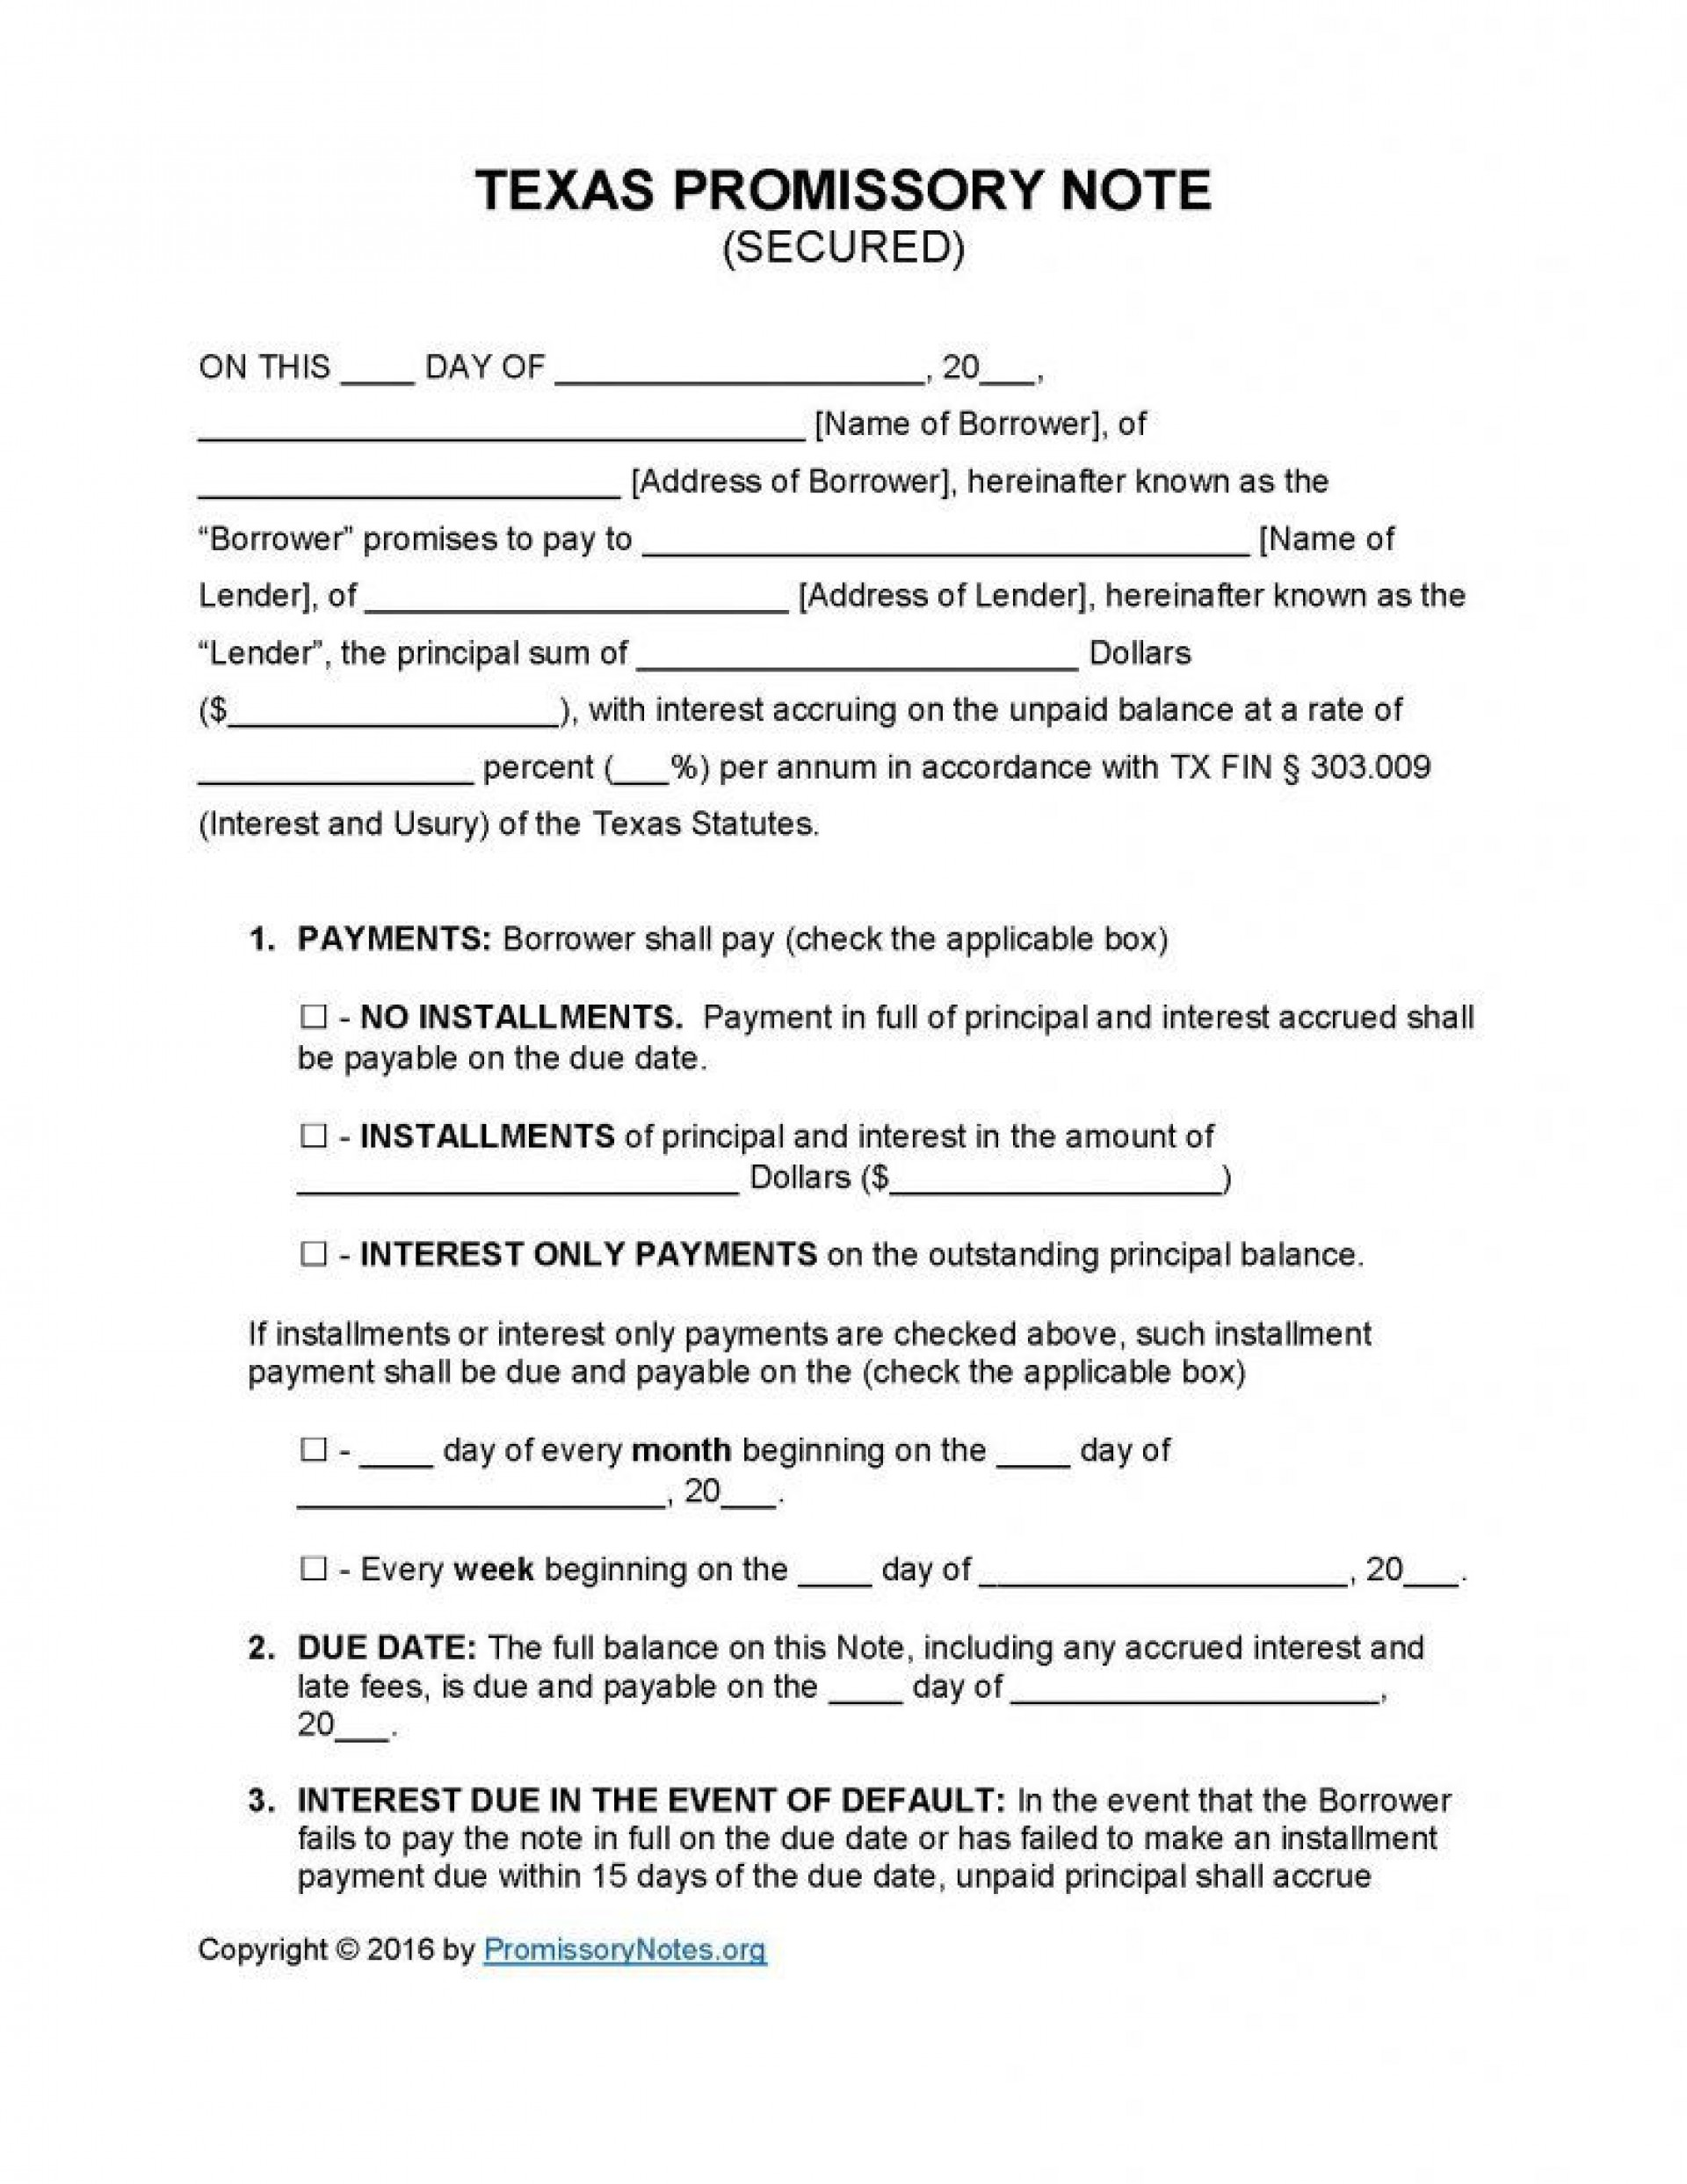 008 Impressive Real Estate Promissory Note Template High Resolution  Pdf The Commission Approved Earnest Money Form1920